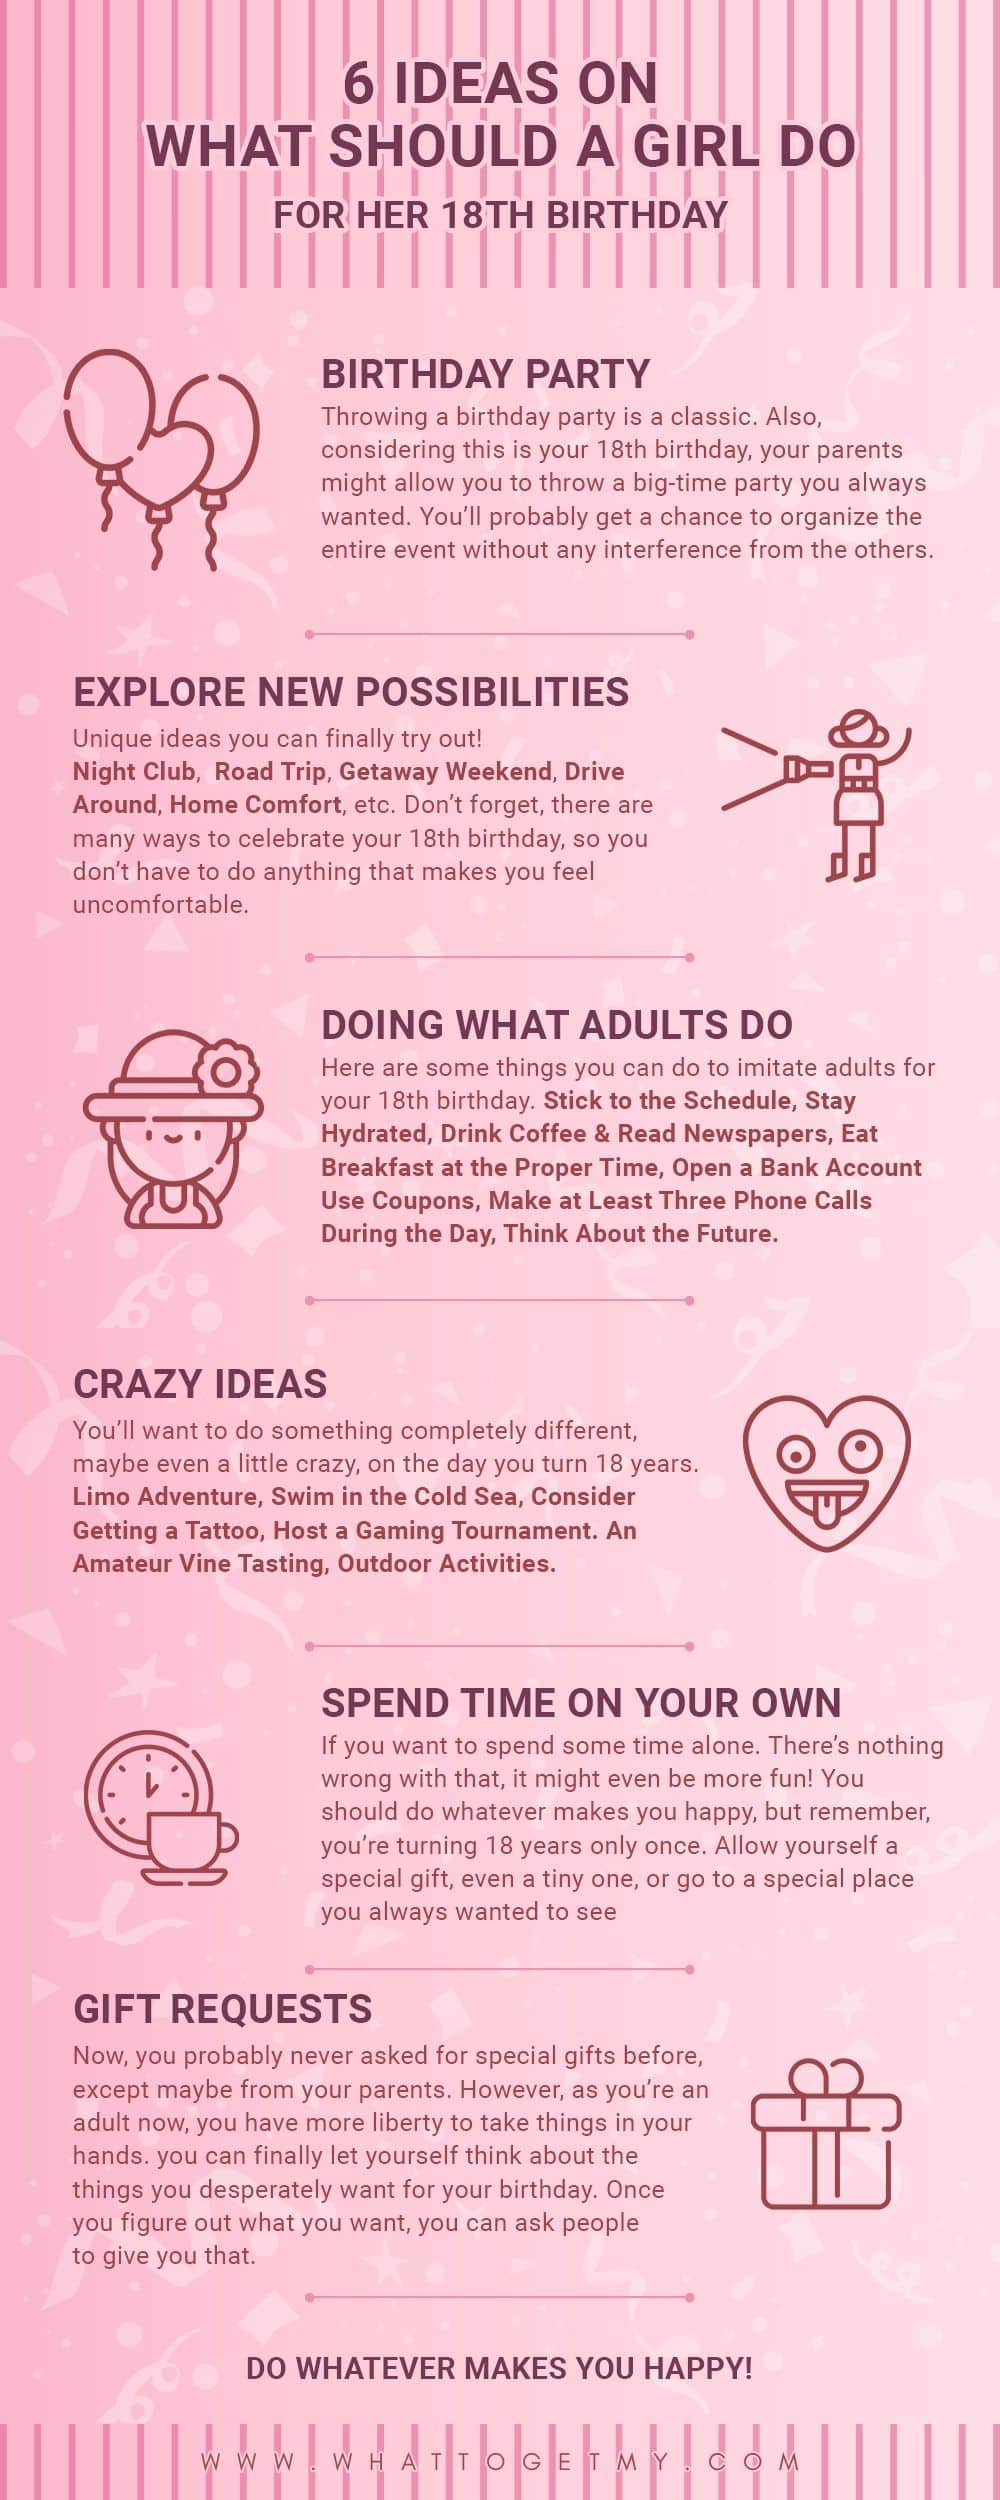 Infographic What Should A Girl Do For Her 18th Birthday